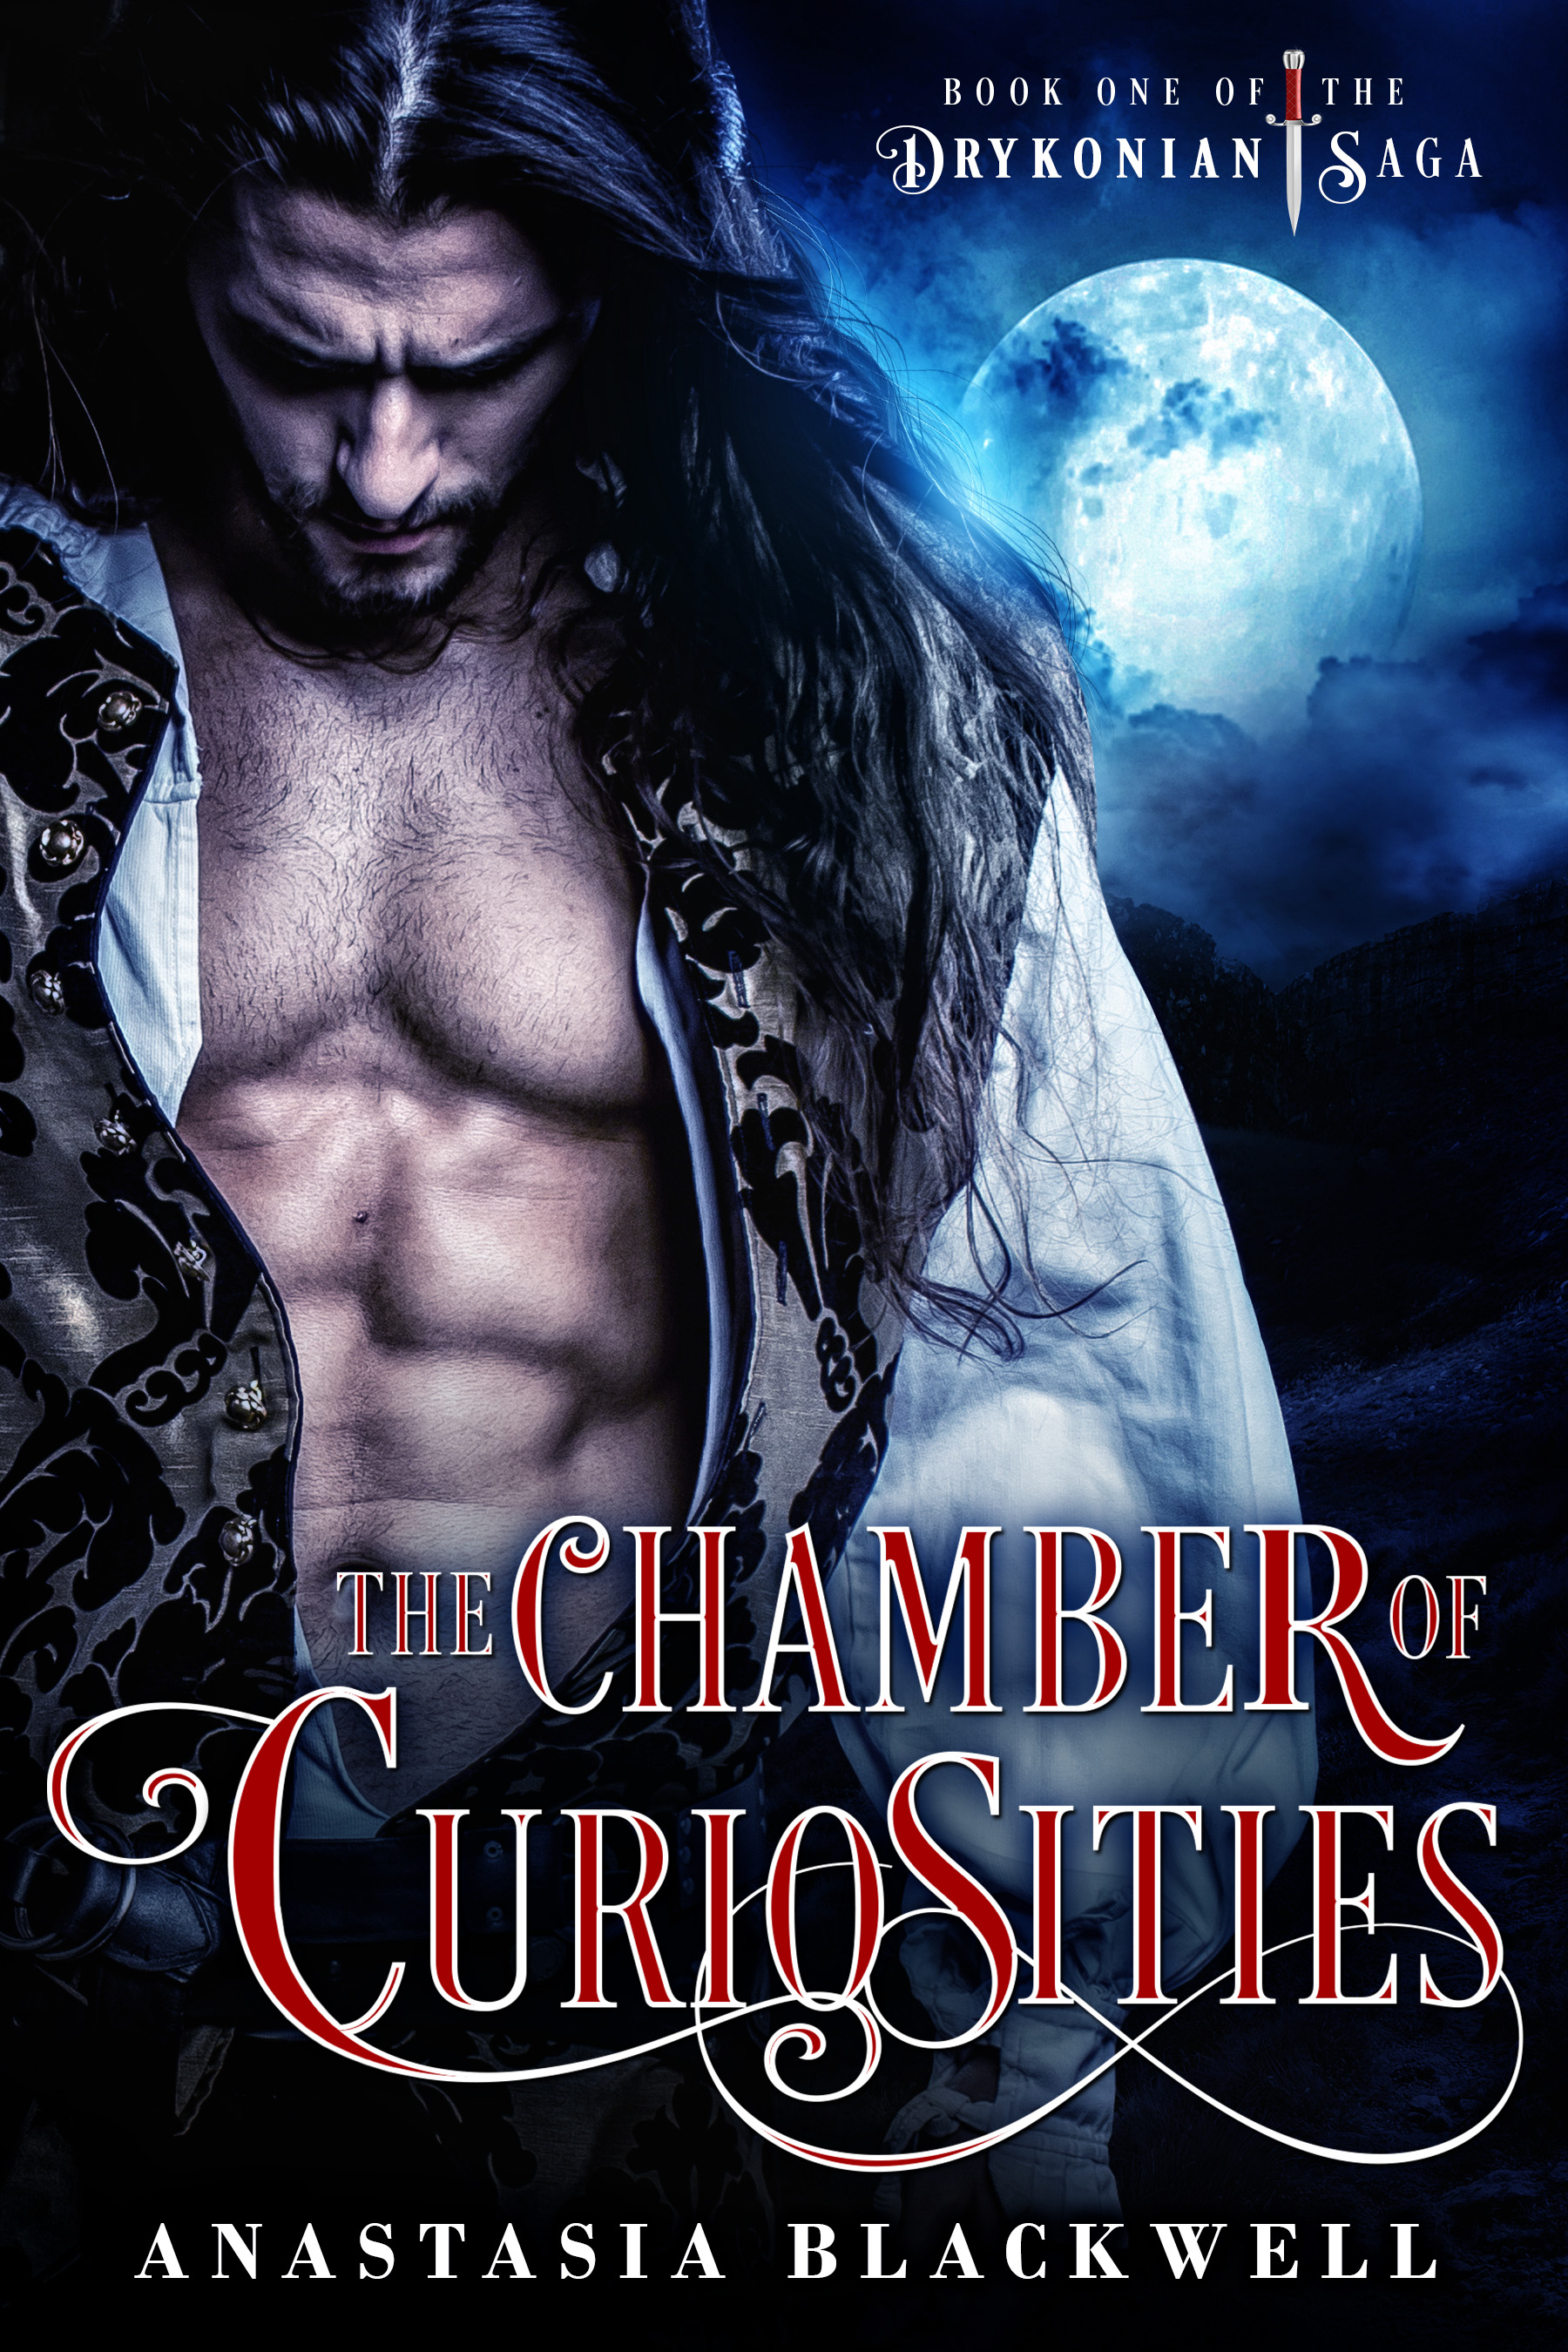 The Chamber of Curiosities